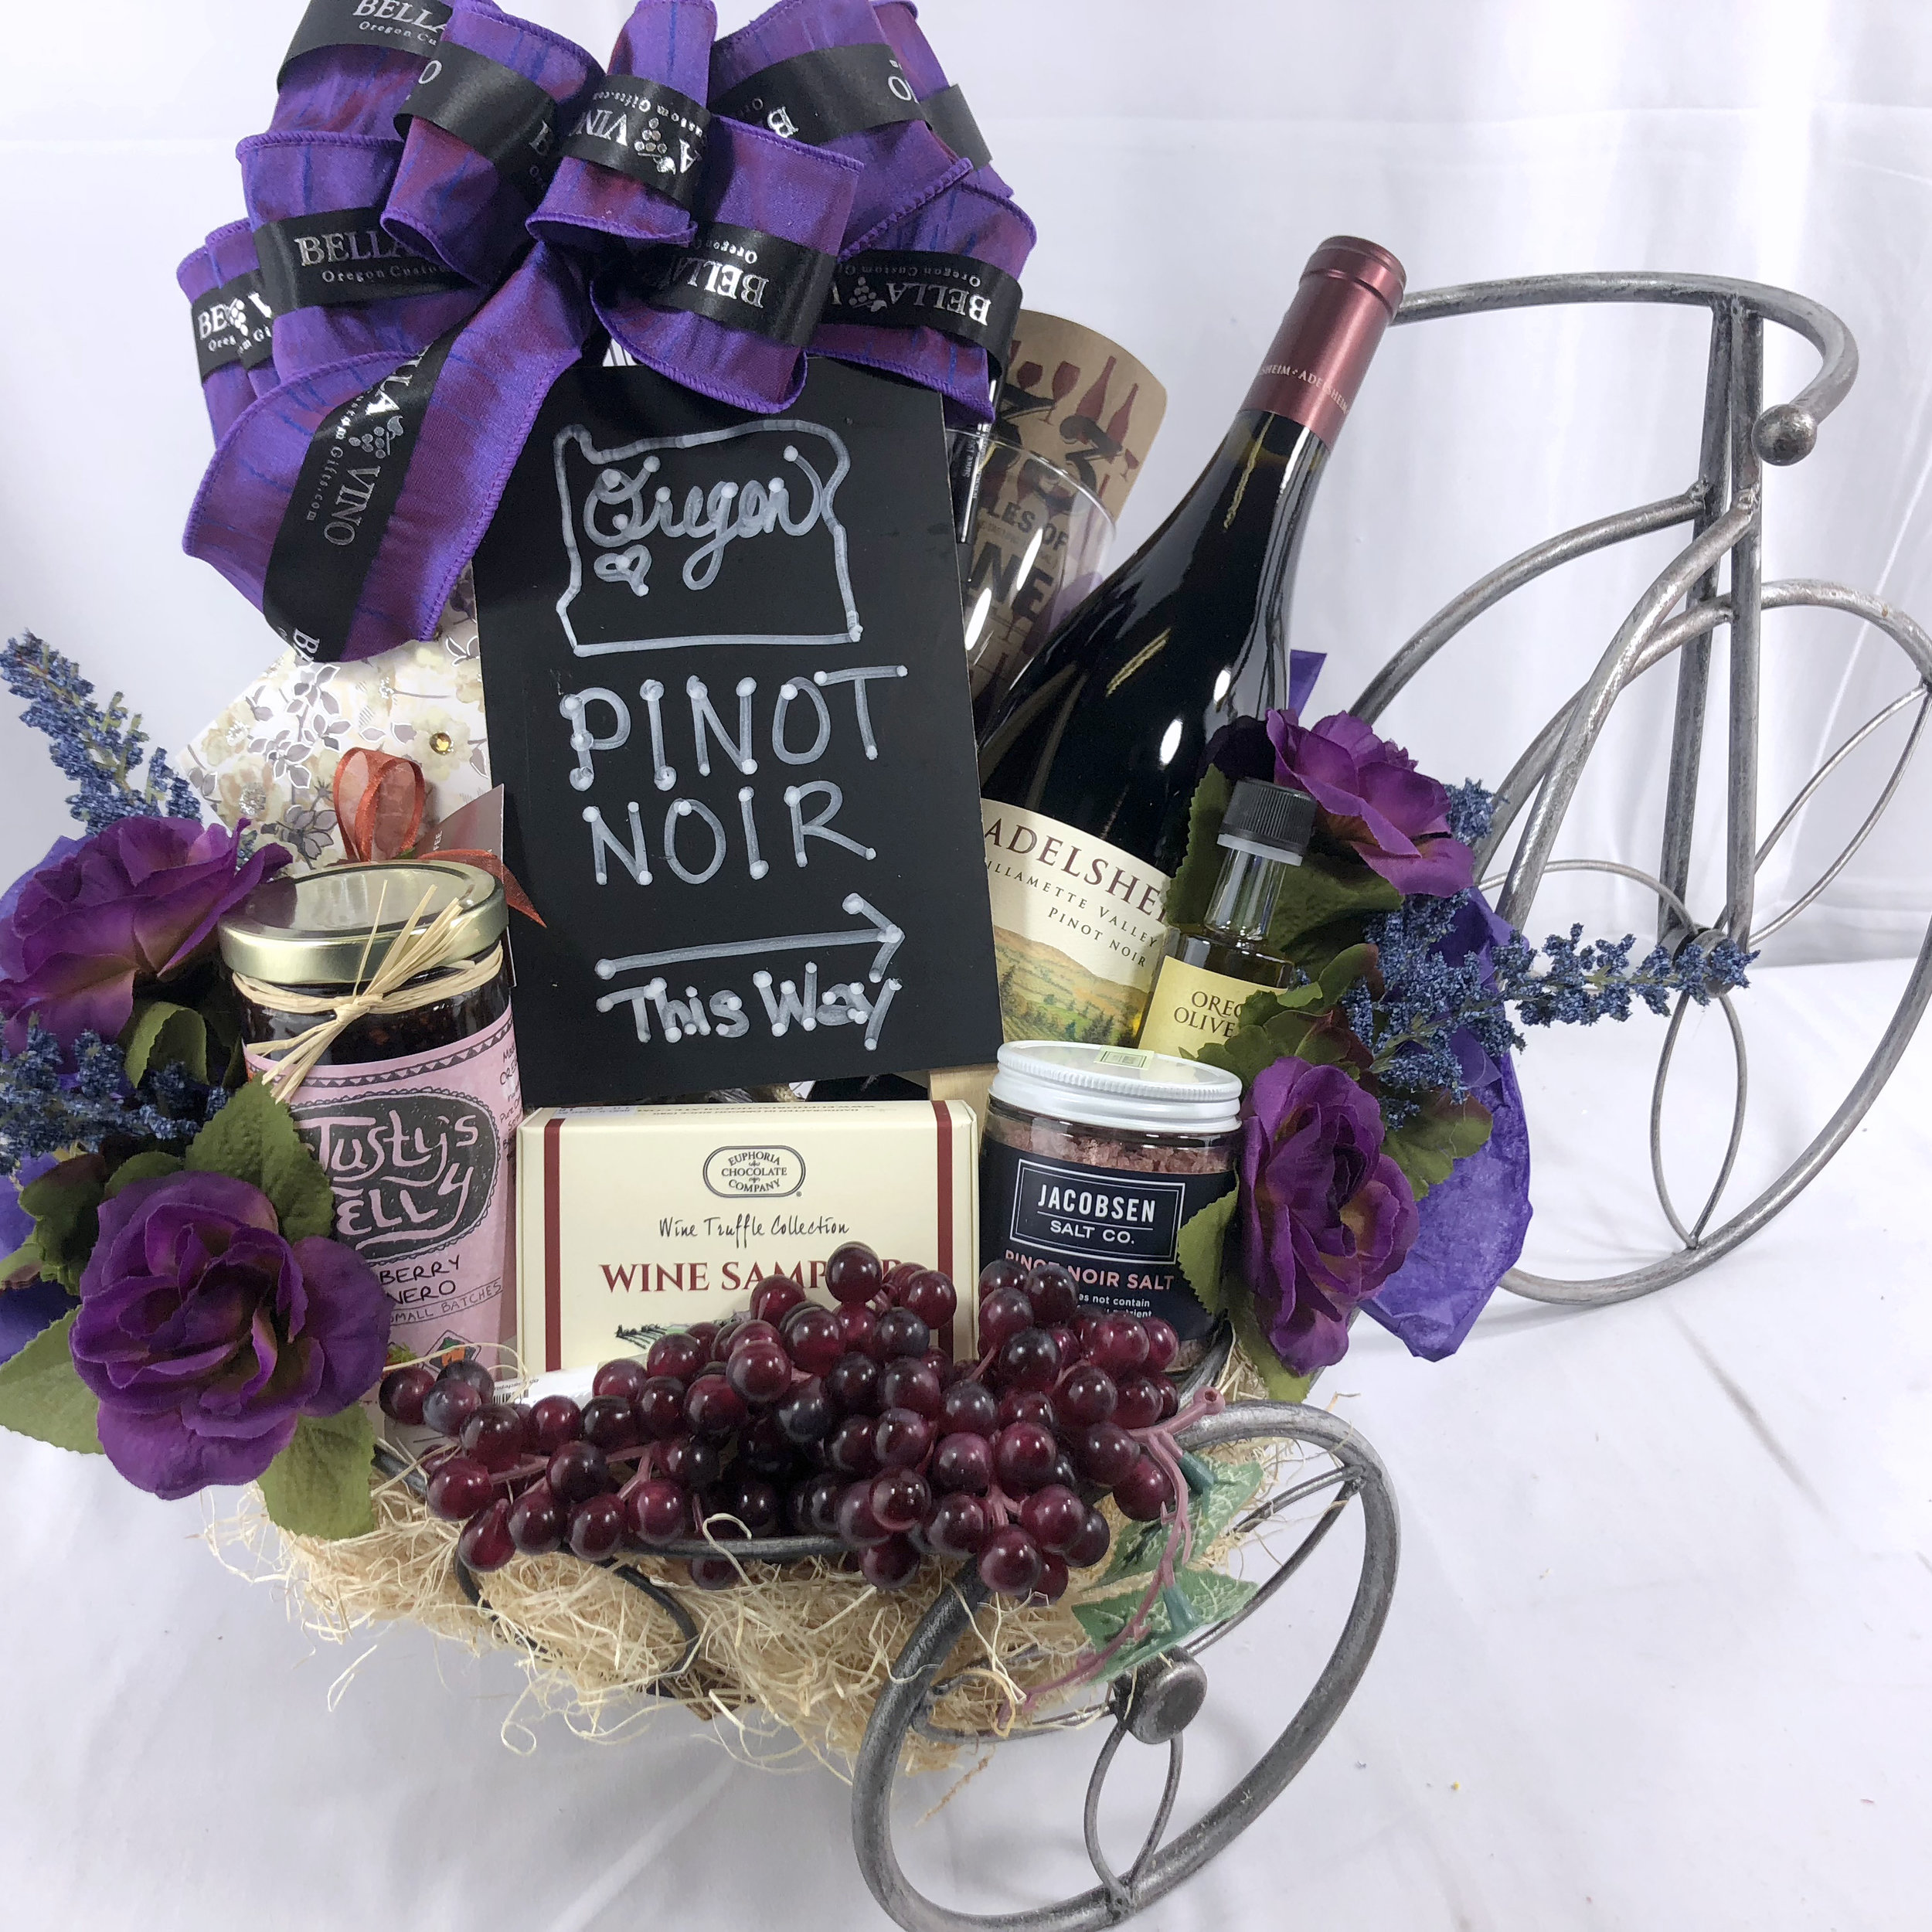 oREGON wINE gifts - Gift baskets & boxes with custom options Containing Oregon wine & foods